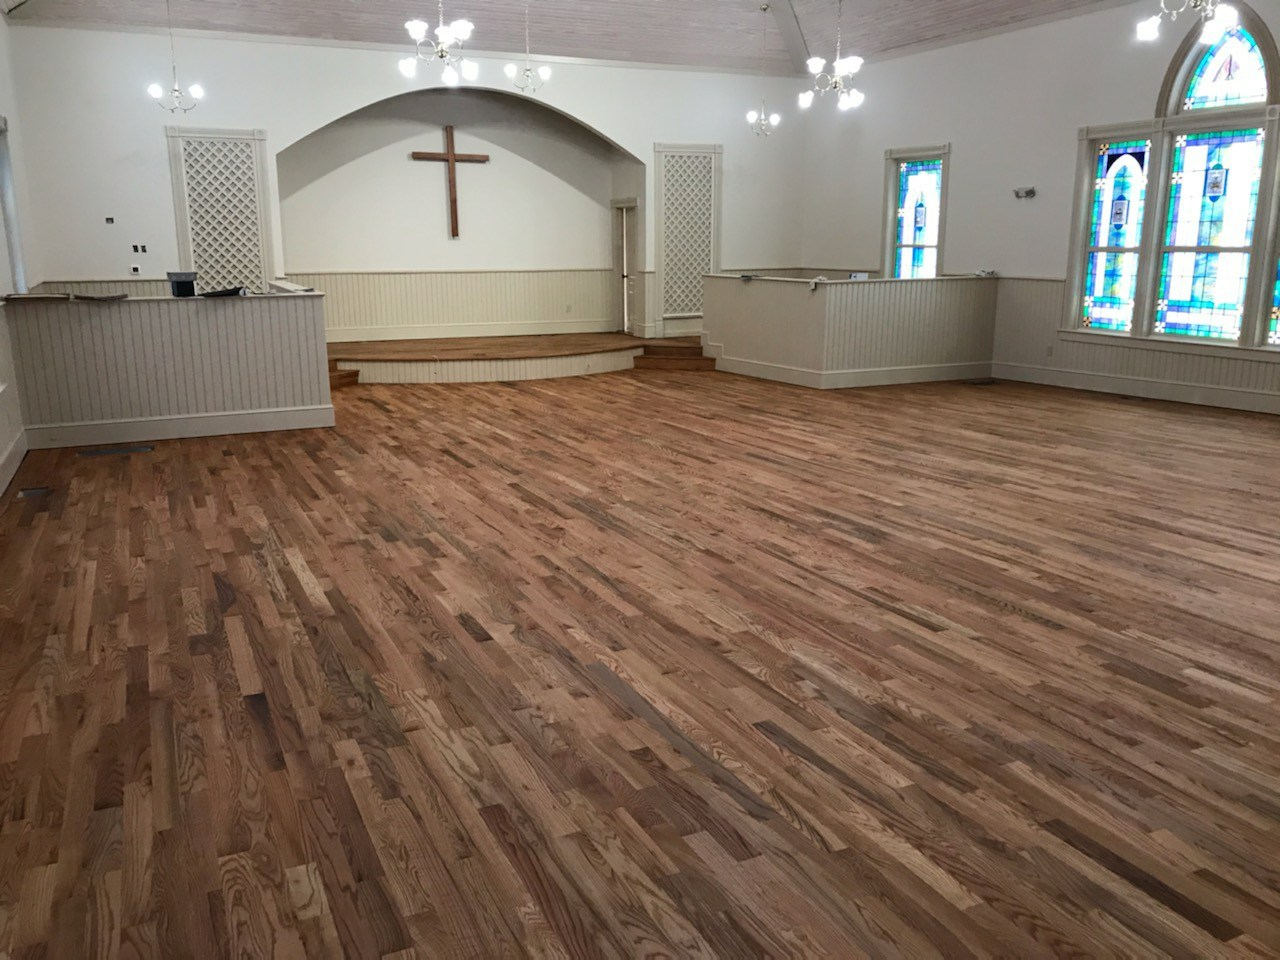 Interior of church with wooden floor